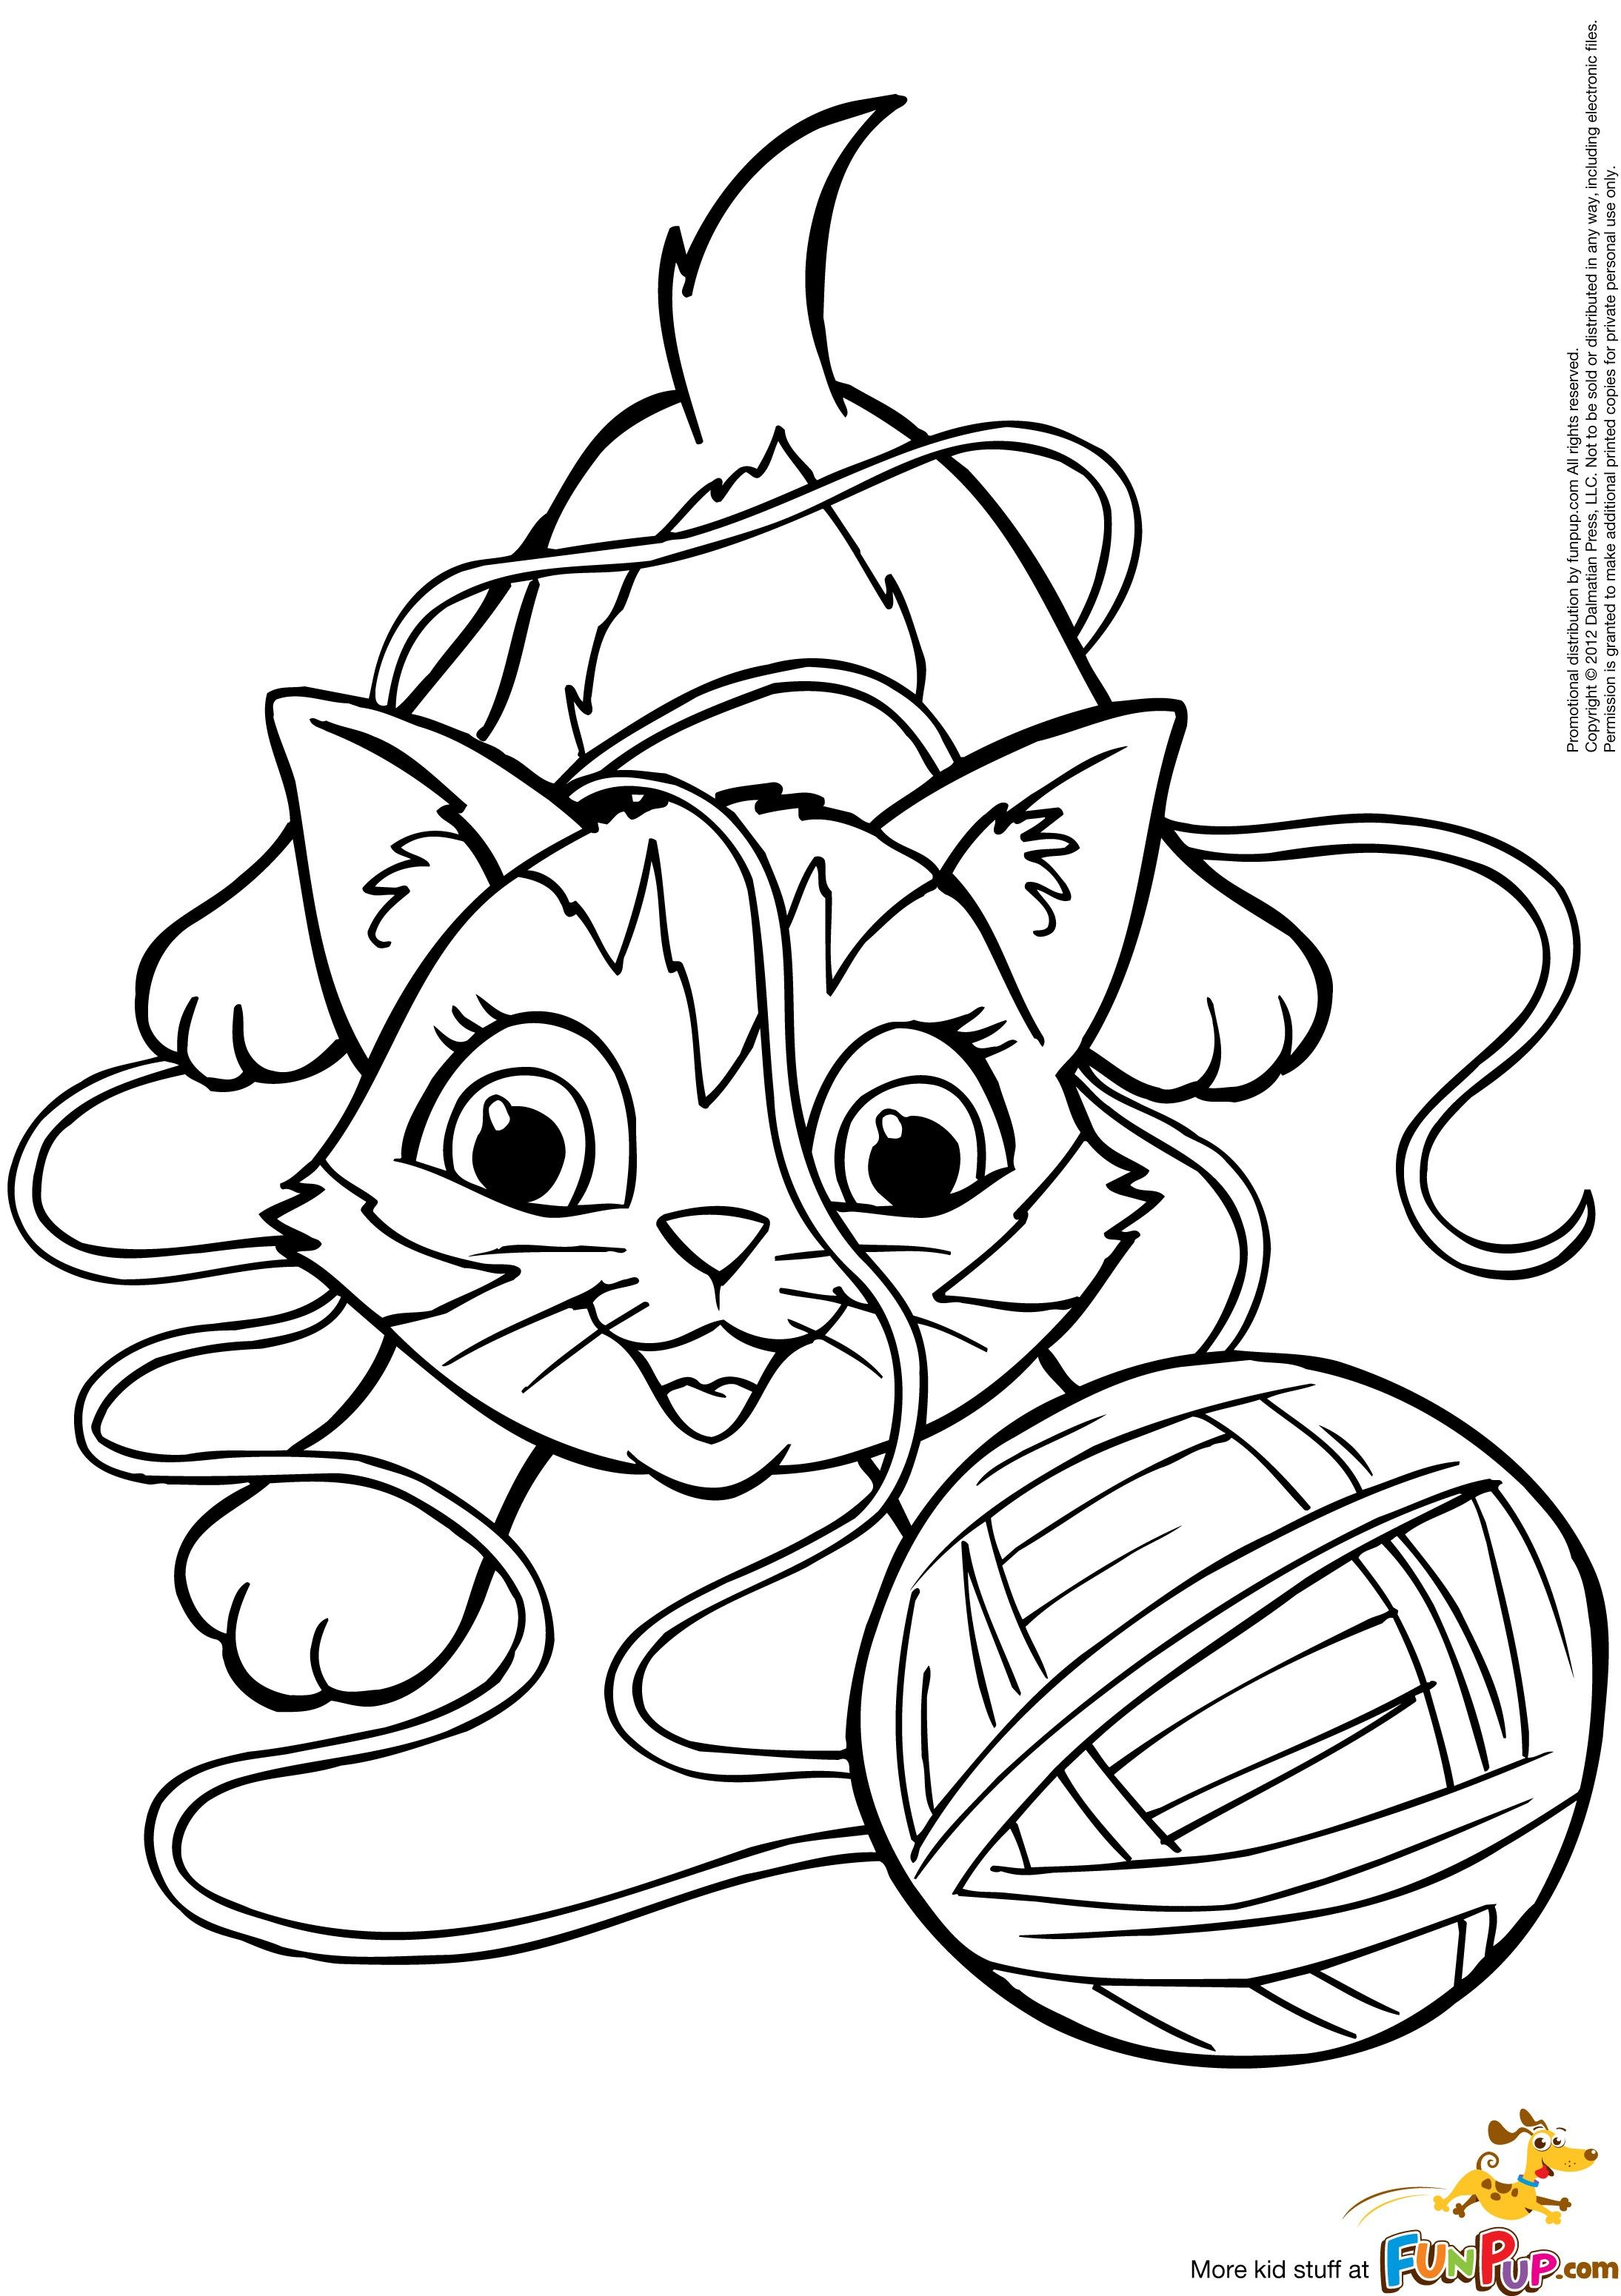 2189x3101 Amazing Kitten With Yarn Coloring Ball Of Page Pics For Cat Styles